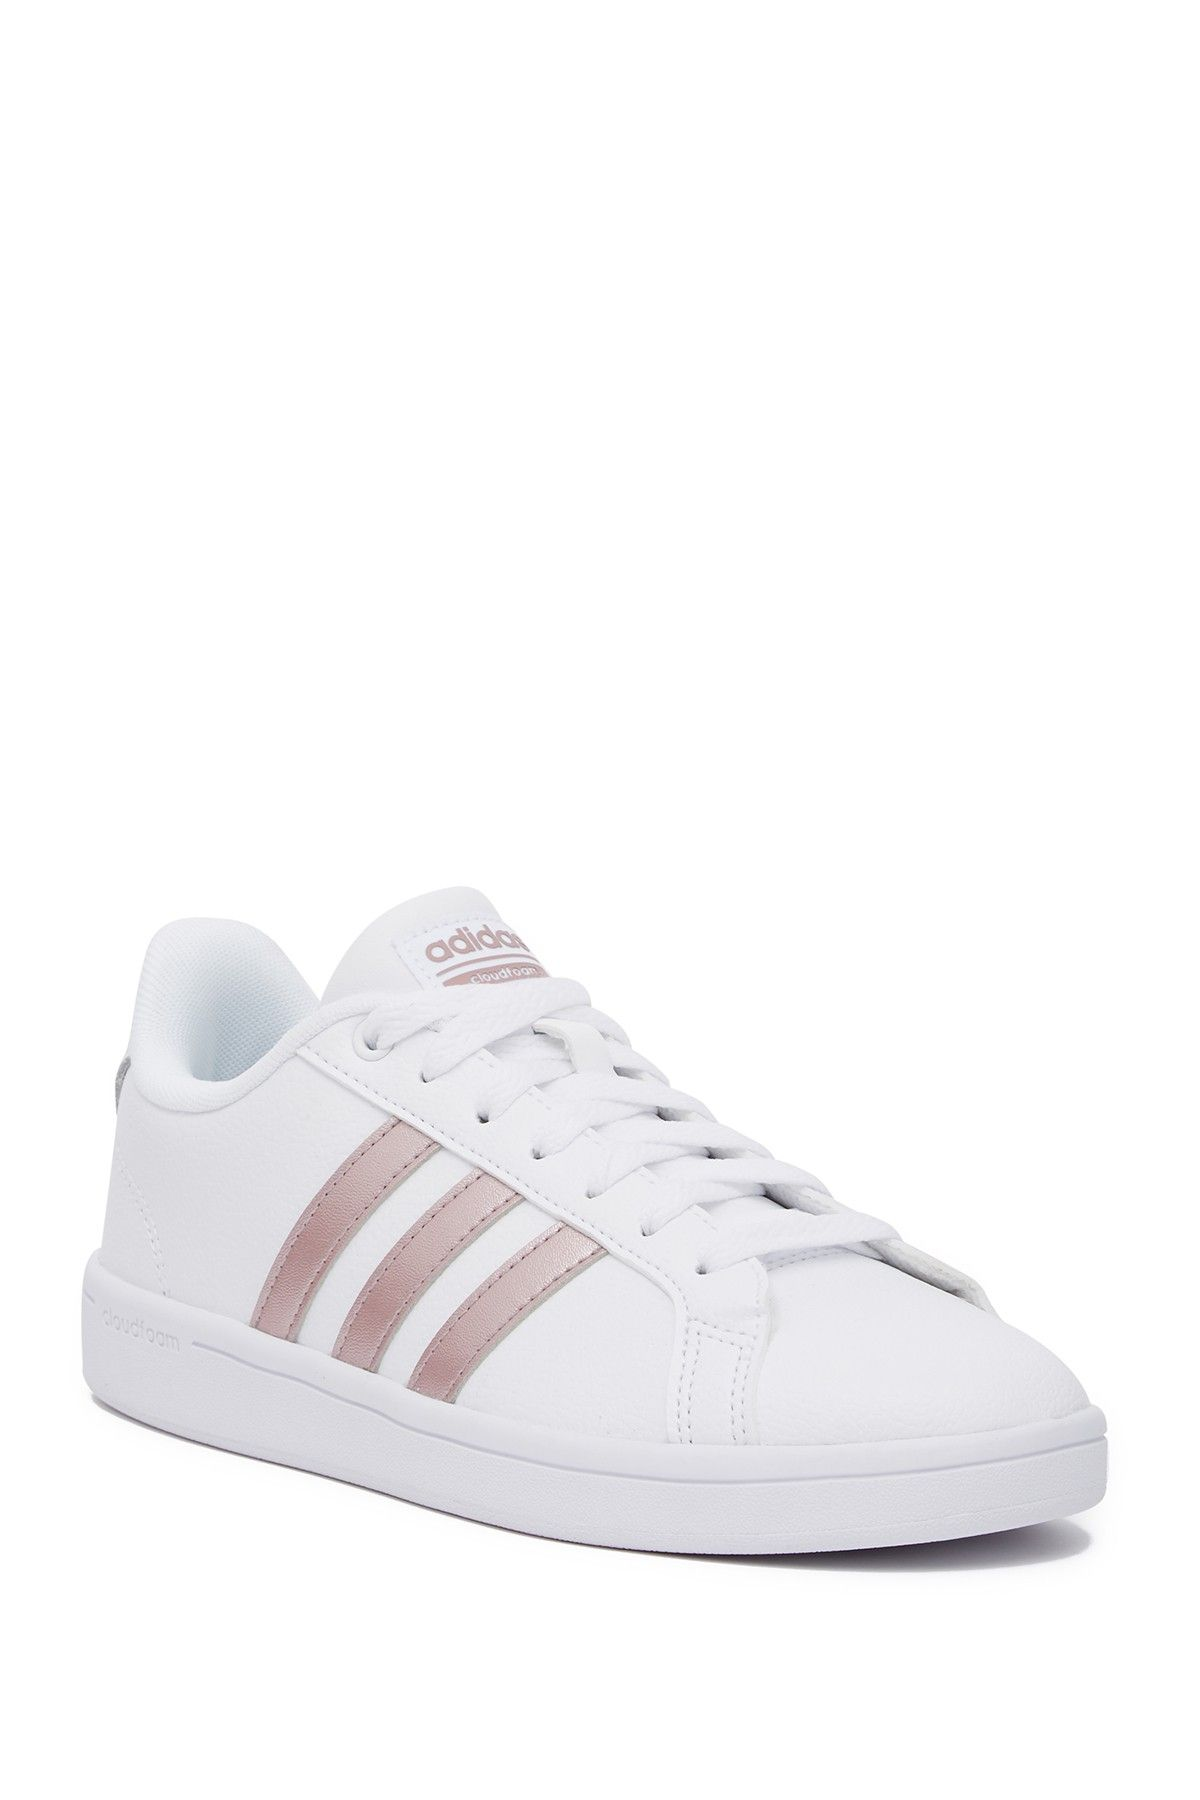 adidas cloudfoam formateurs for girl